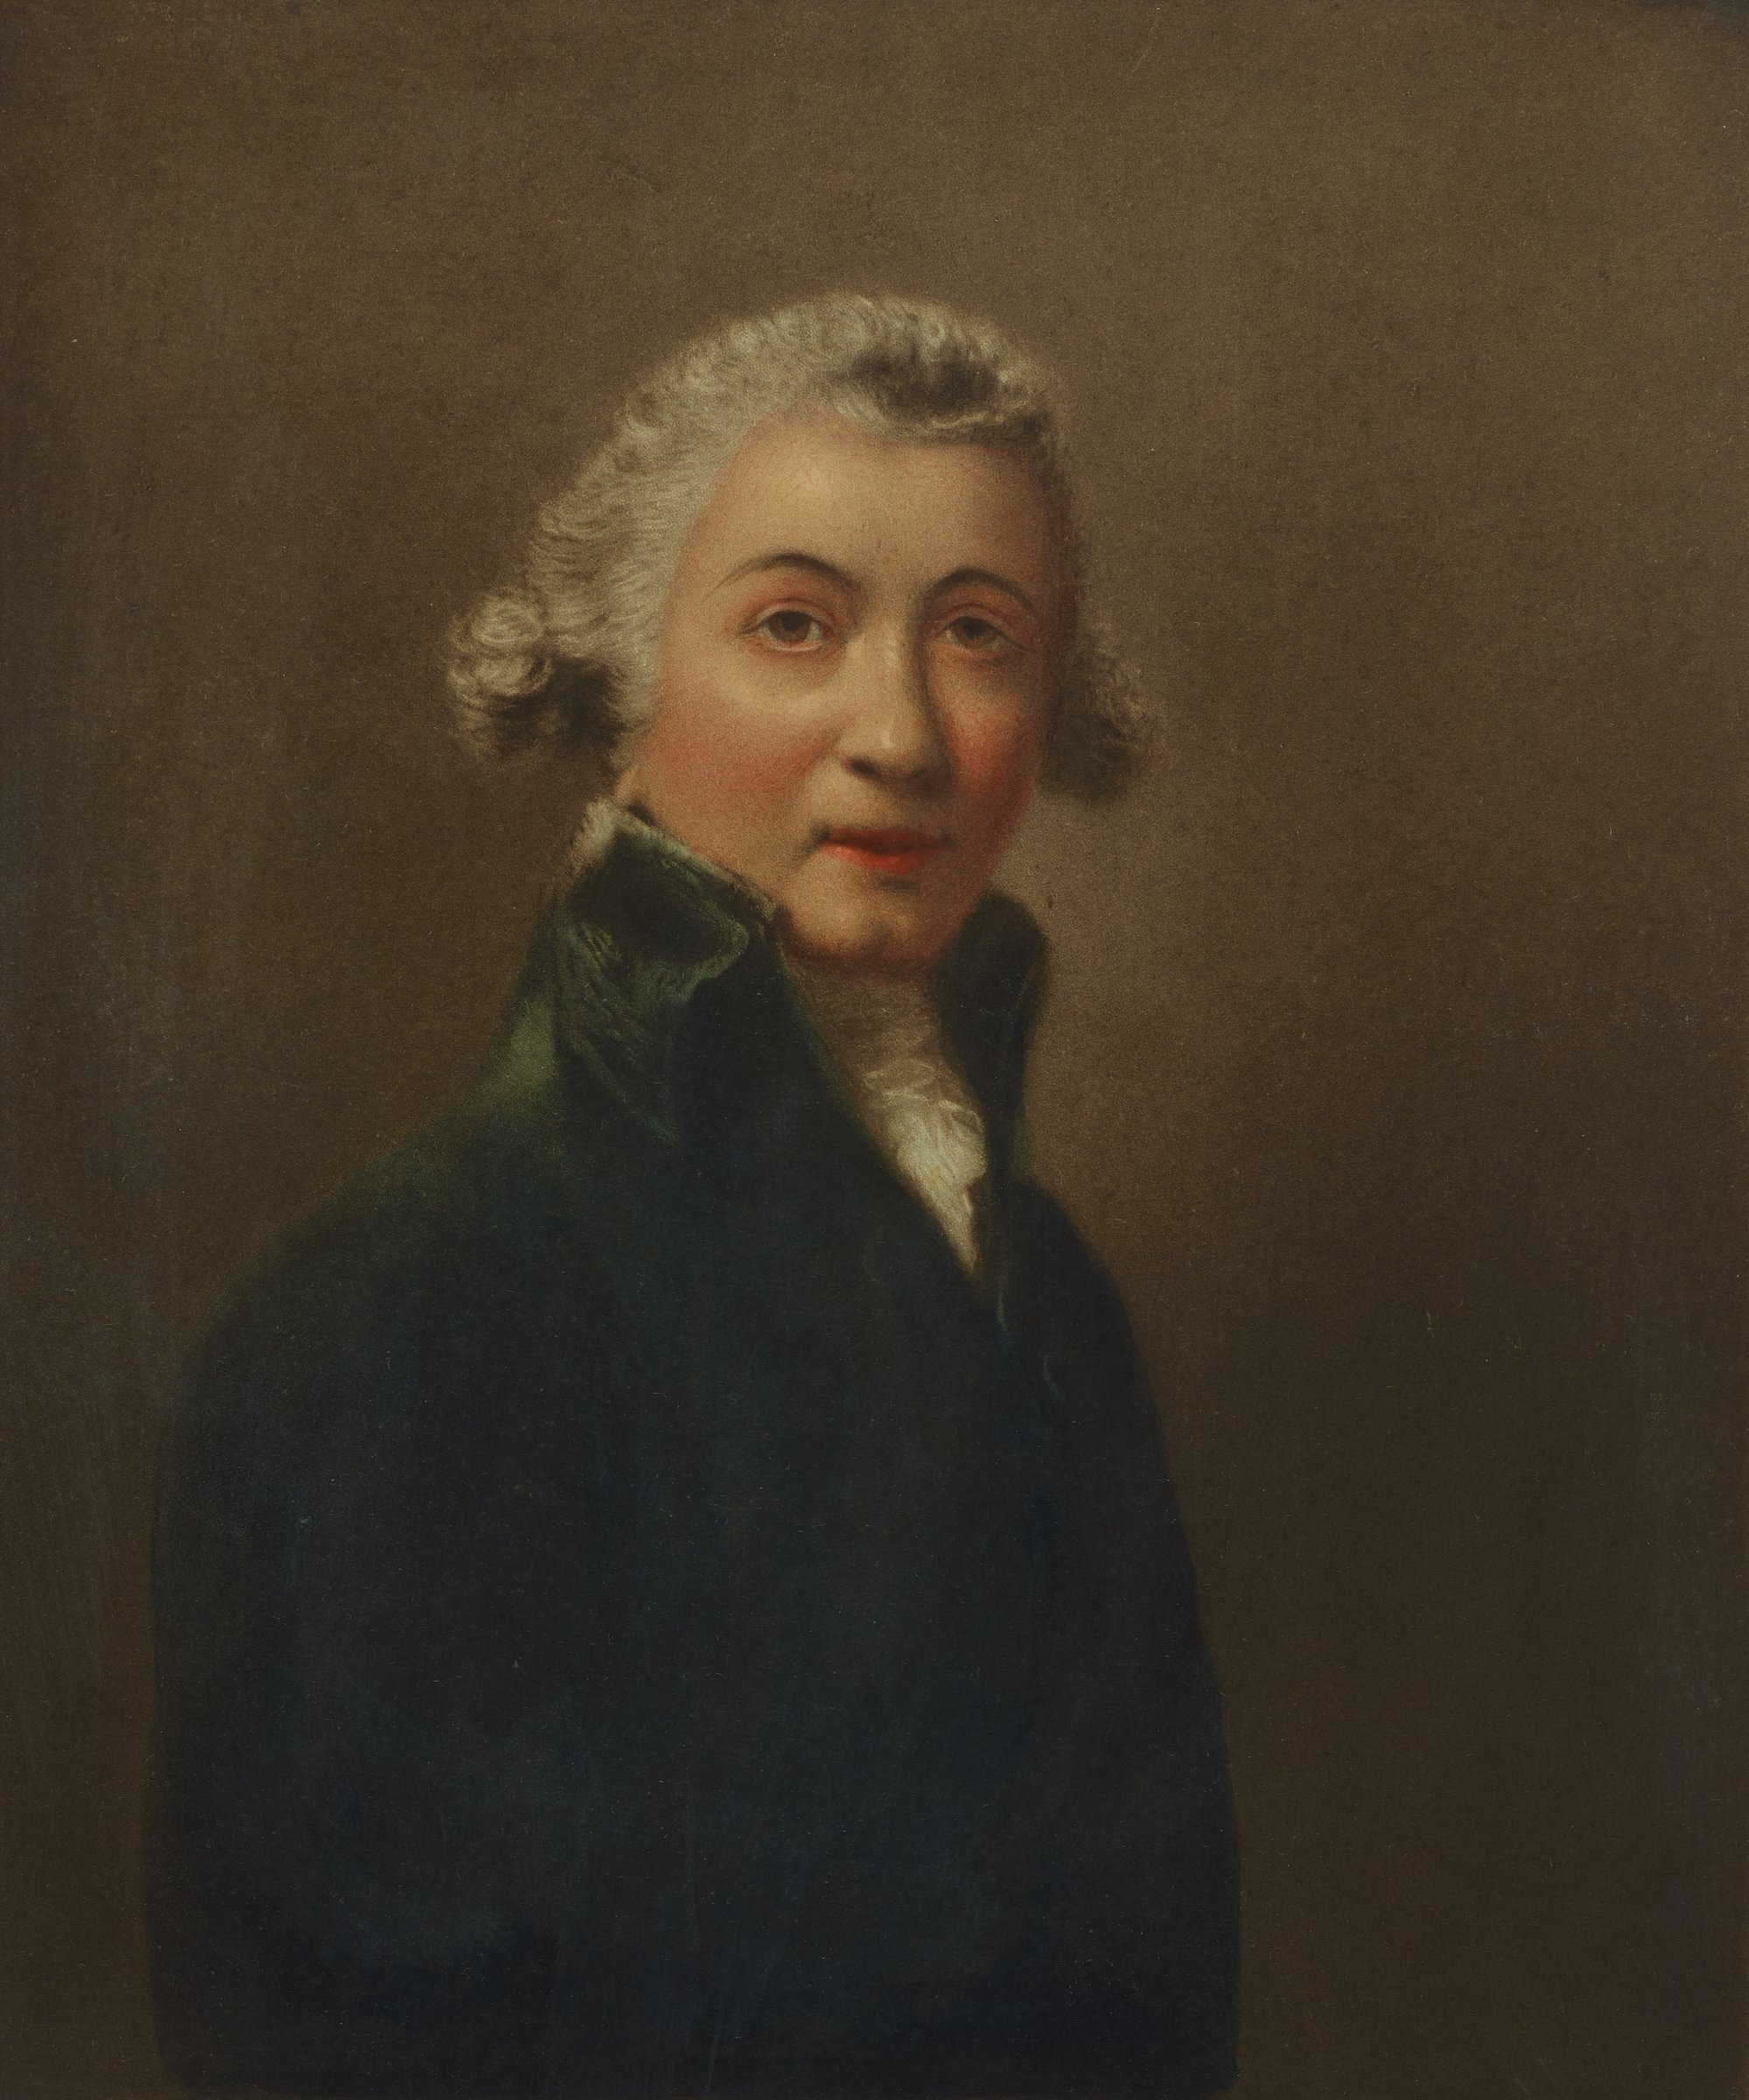 Half length portrait of Sir Joshua Reynolds. He is seen in a white wip with a dark colored jacket against a brown background.